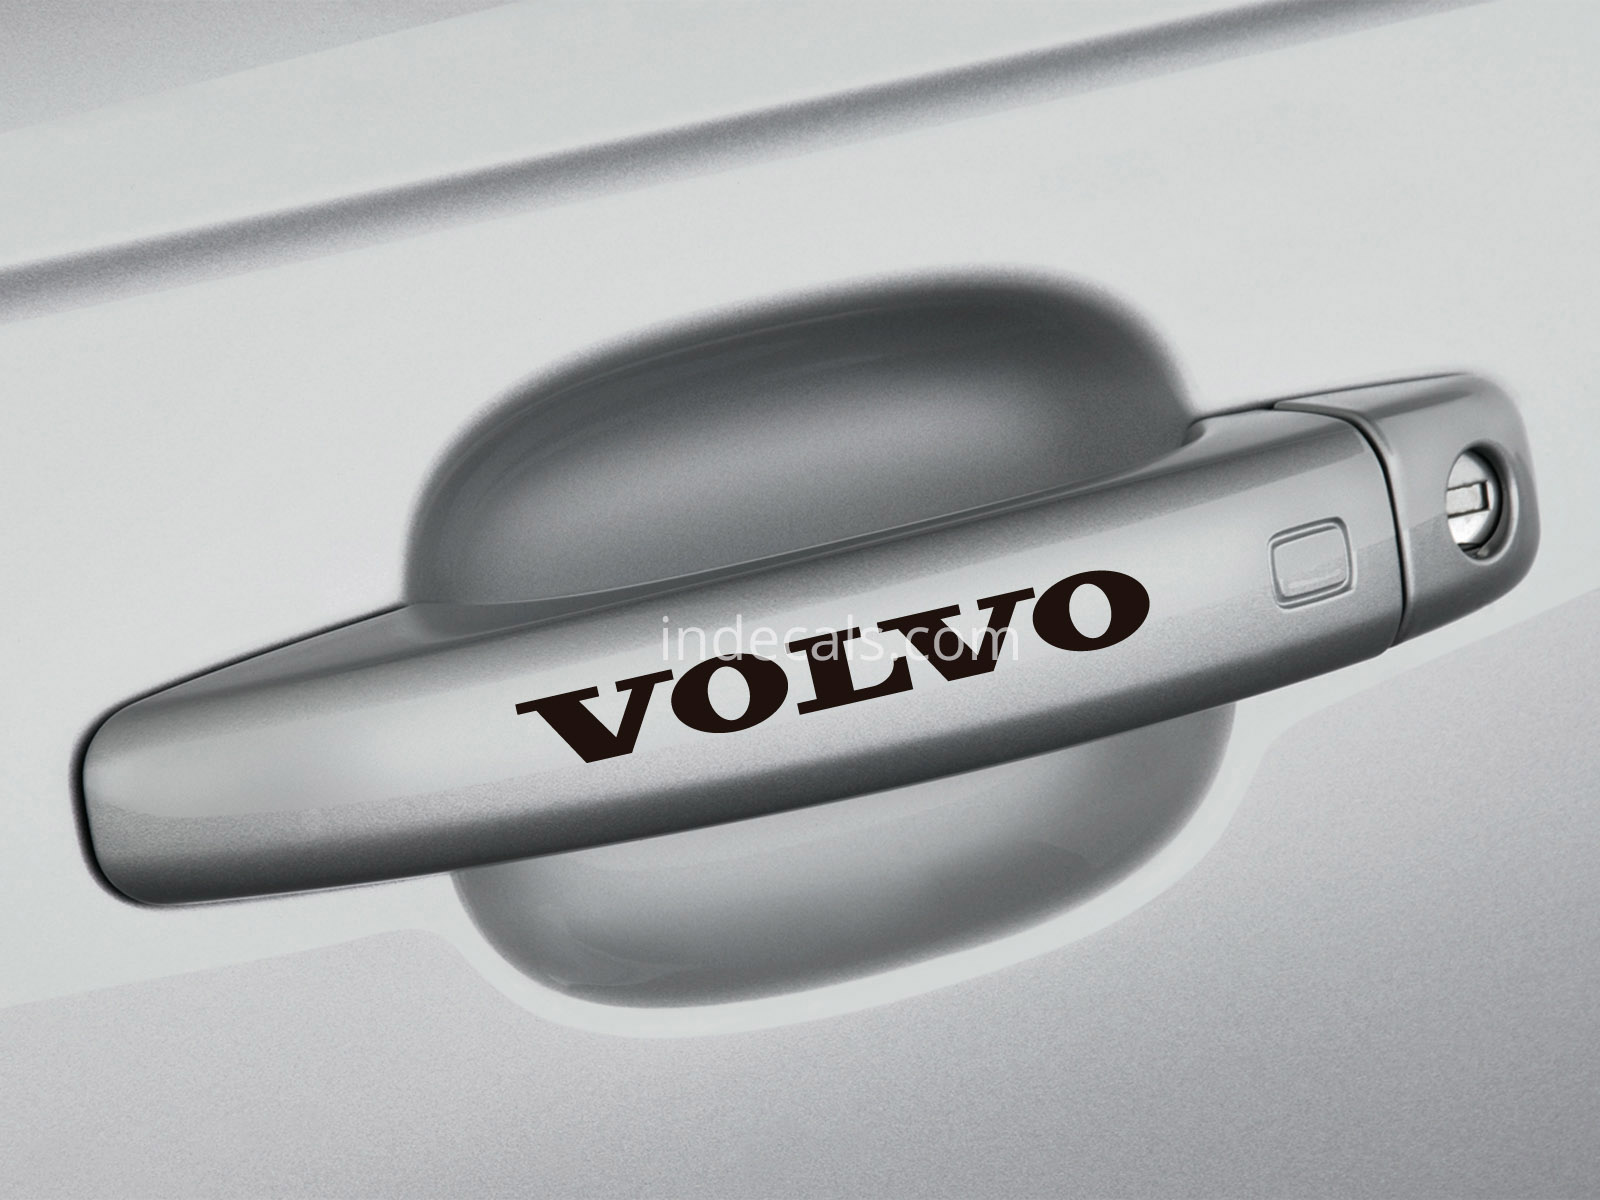 6 x Volvo Stickers for Door Handles - Black